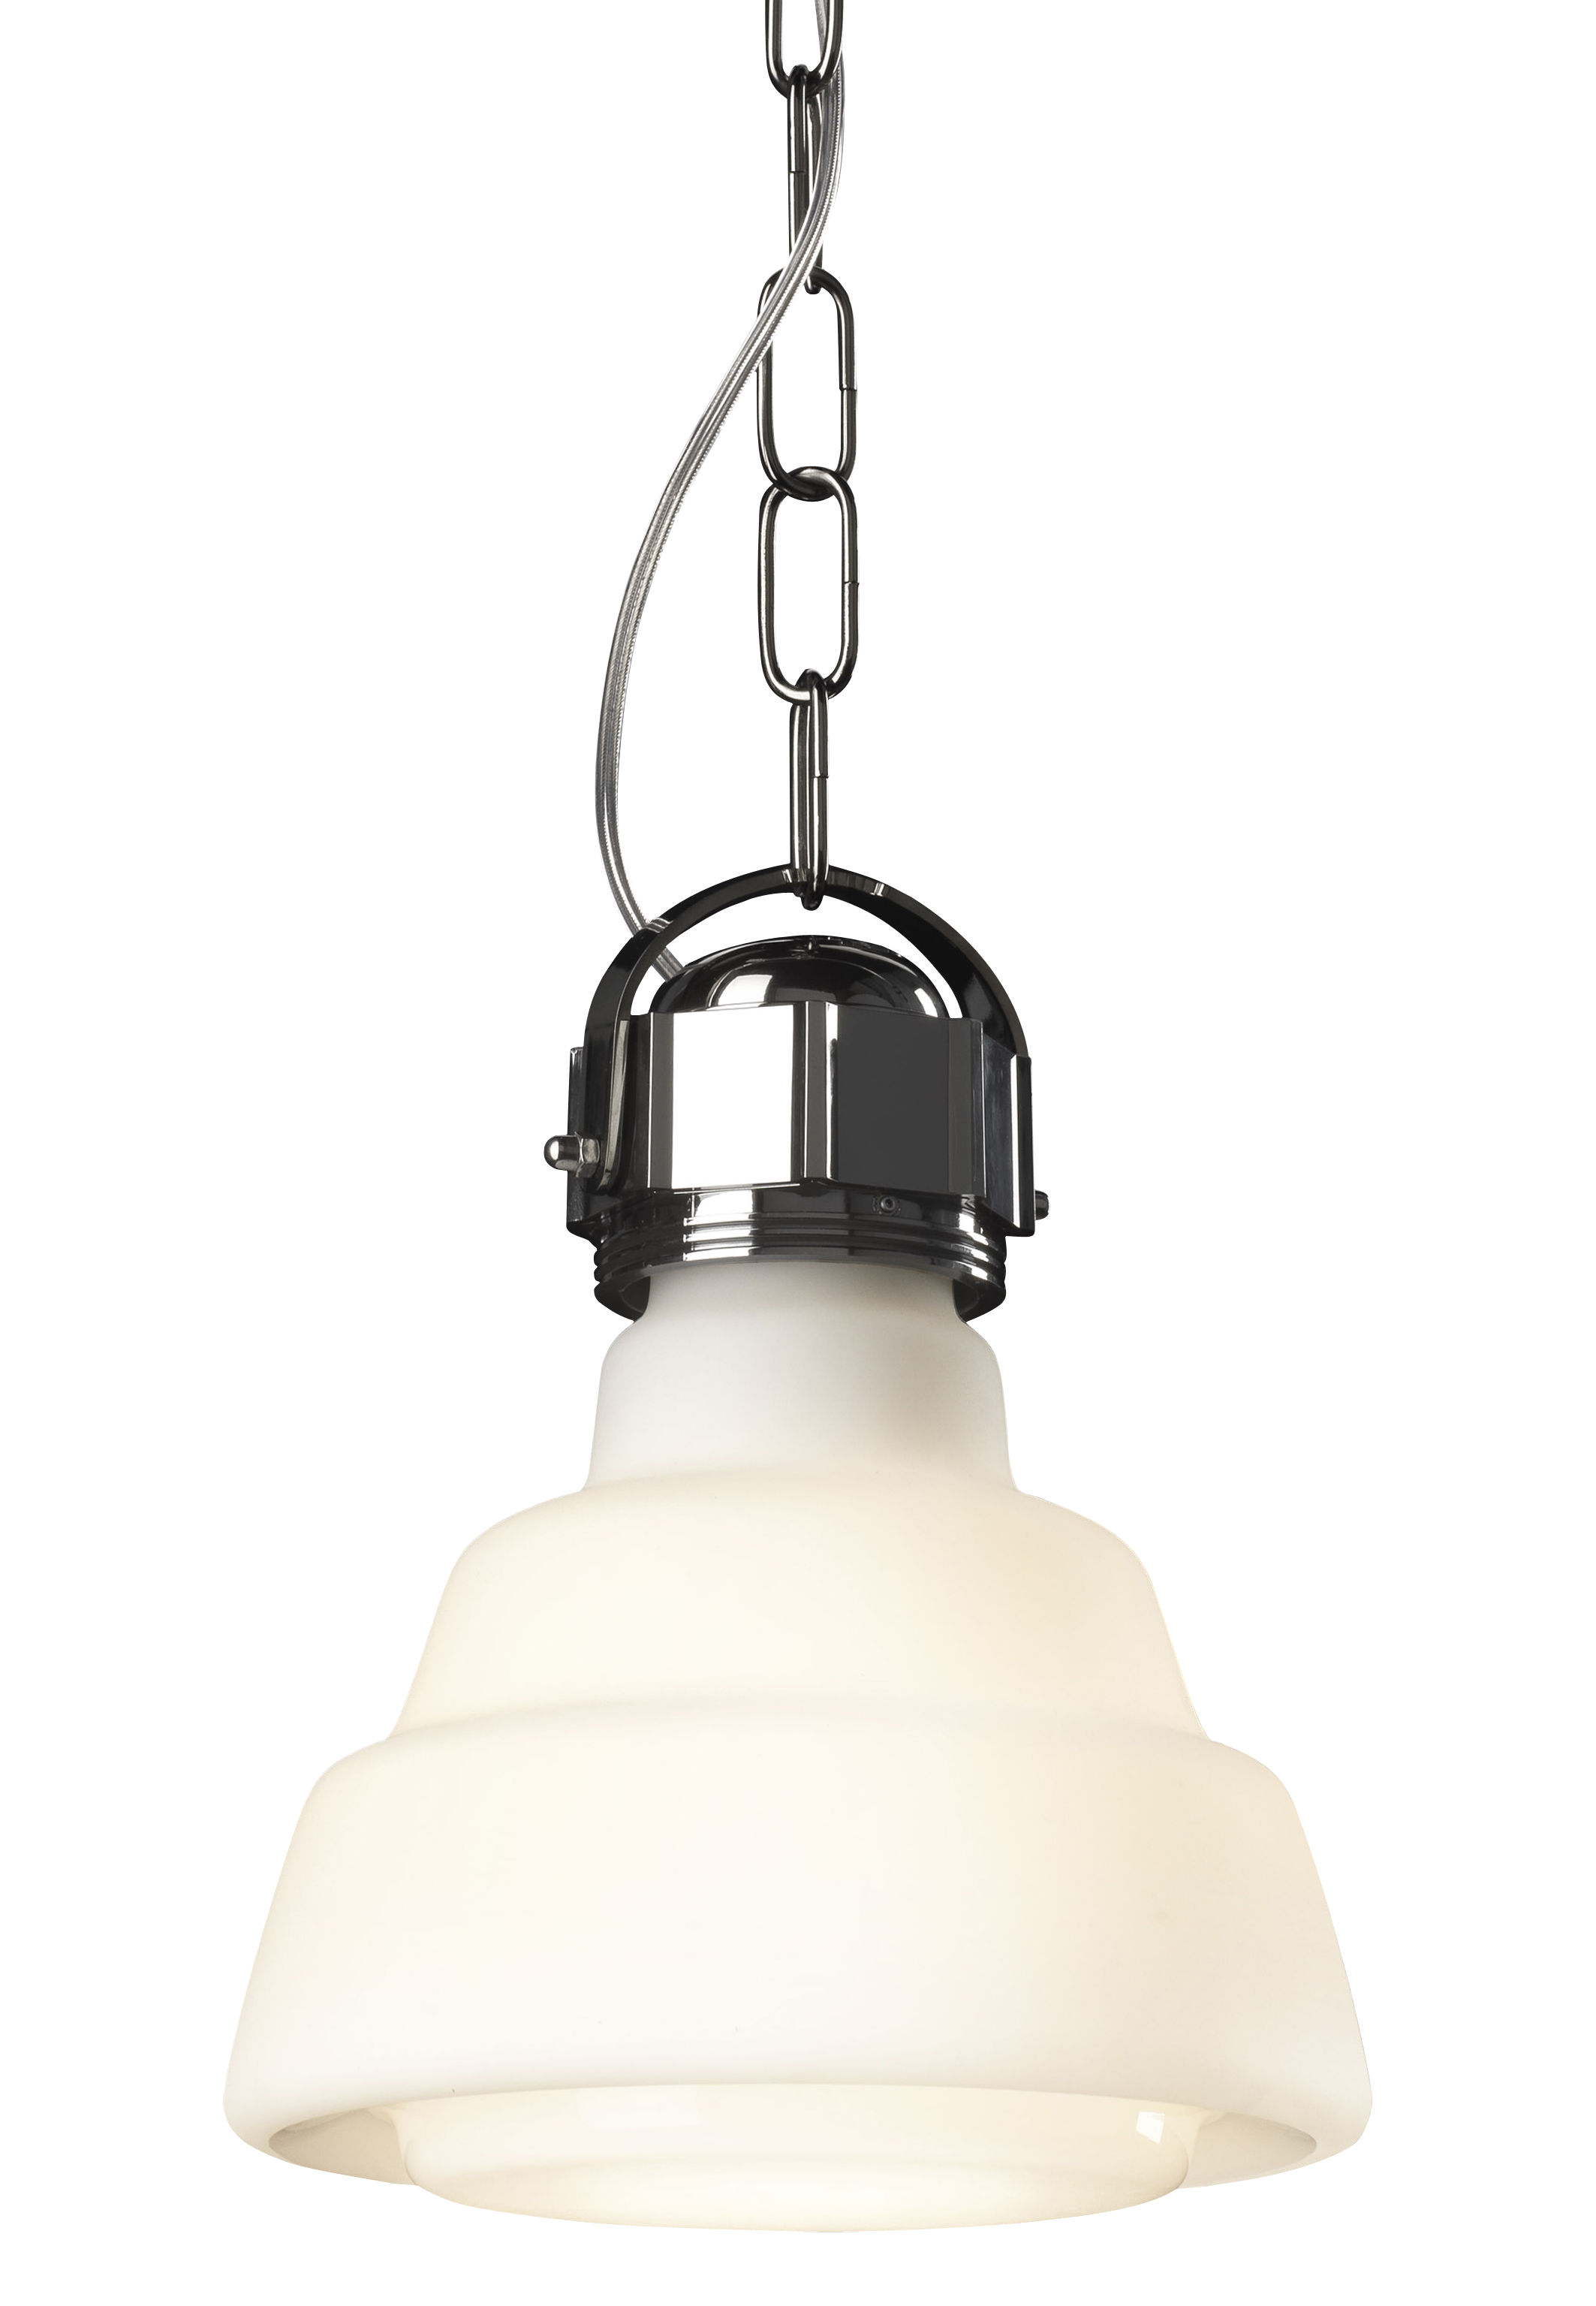 Lighting - Pendant Lighting - Glas Pendant by Diesel with Foscarini - White - Blown glass, Chromed metal